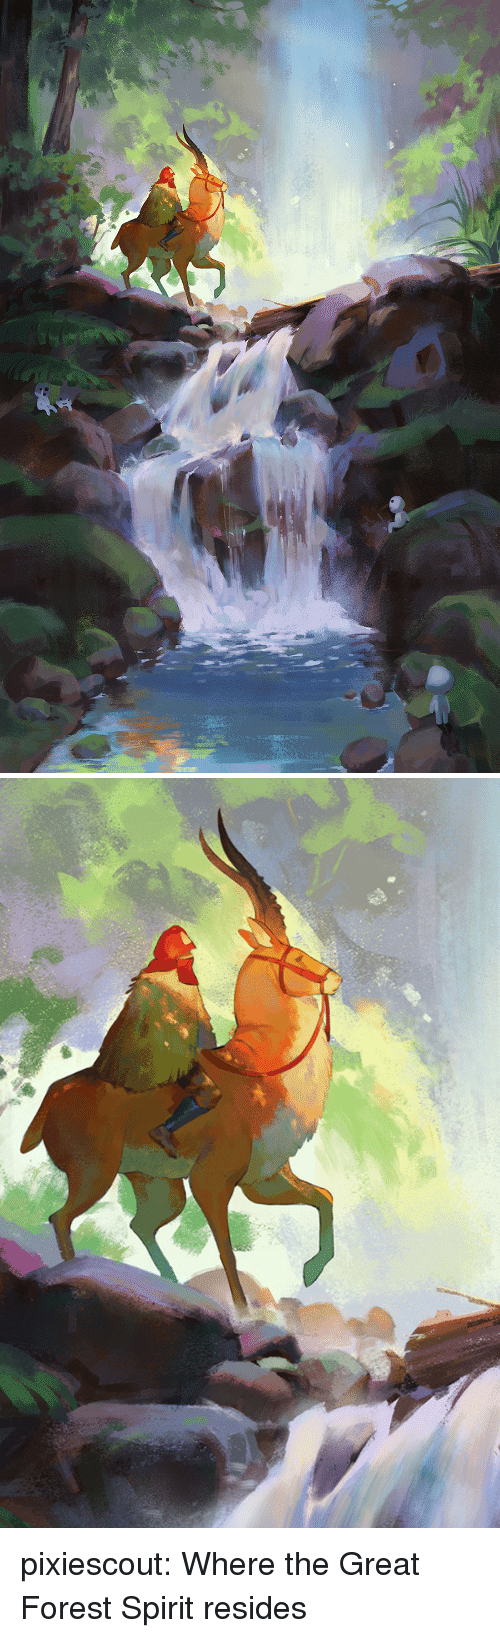 Target, Tumblr, and Blog: pixiescout: Where the Great Forest Spirit resides